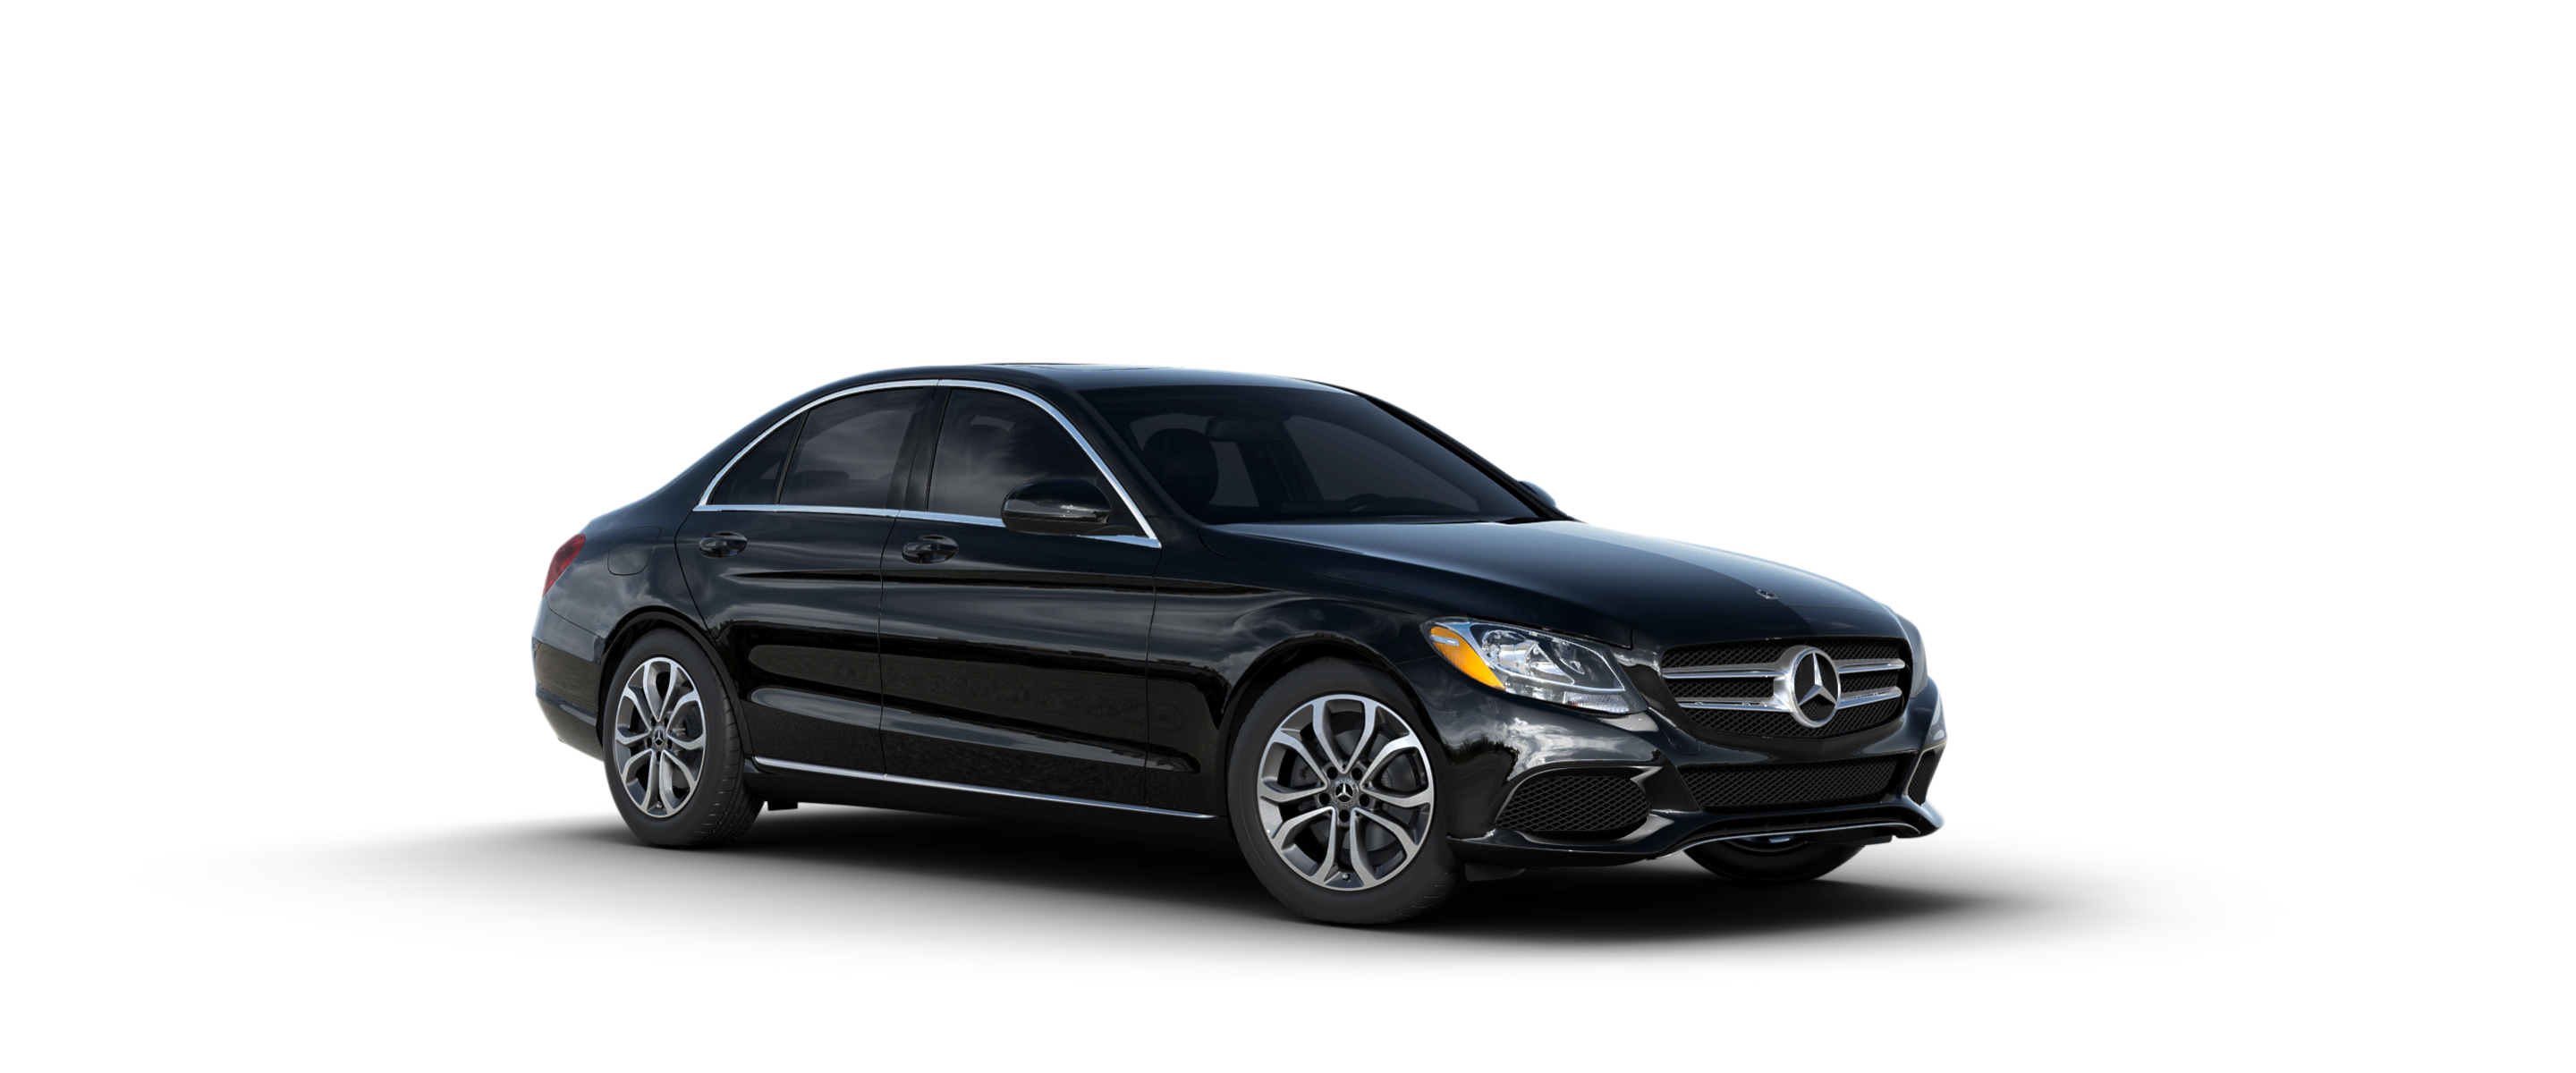 What Colors Are Available For The 2018 Mercedes Benz C Class